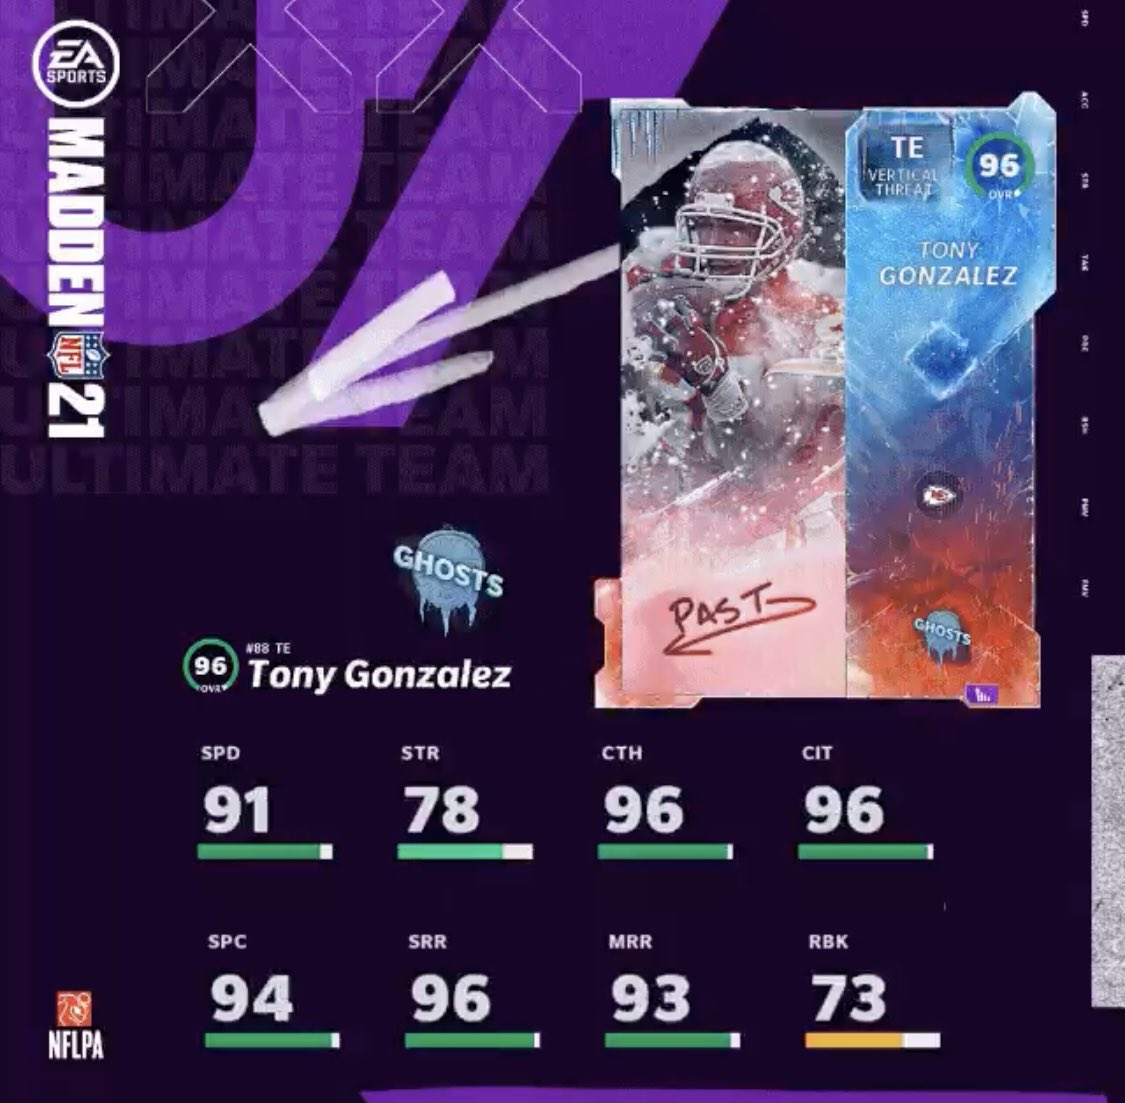 ghosts of madden mut